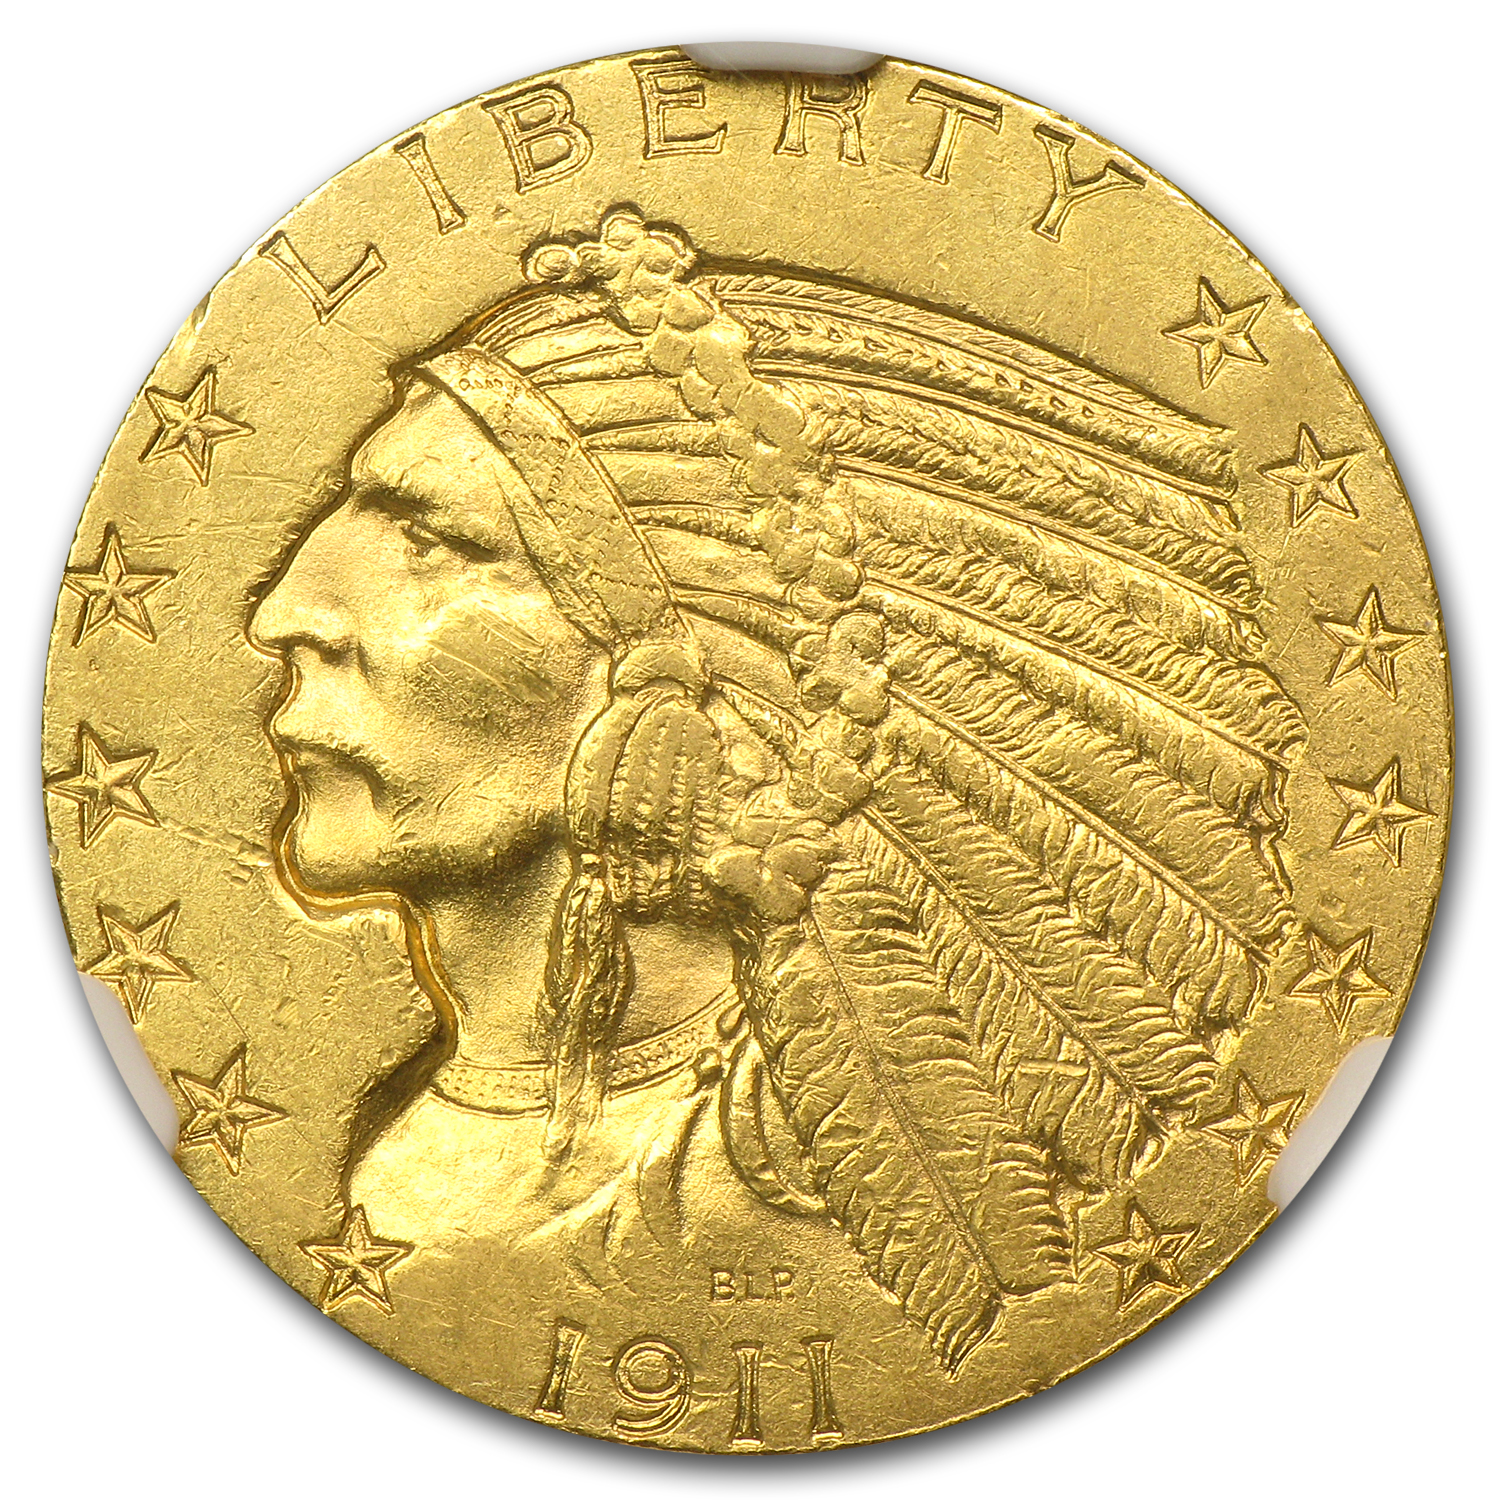 1911 $5 Indian Gold Half Eagle - AU-58 NGC